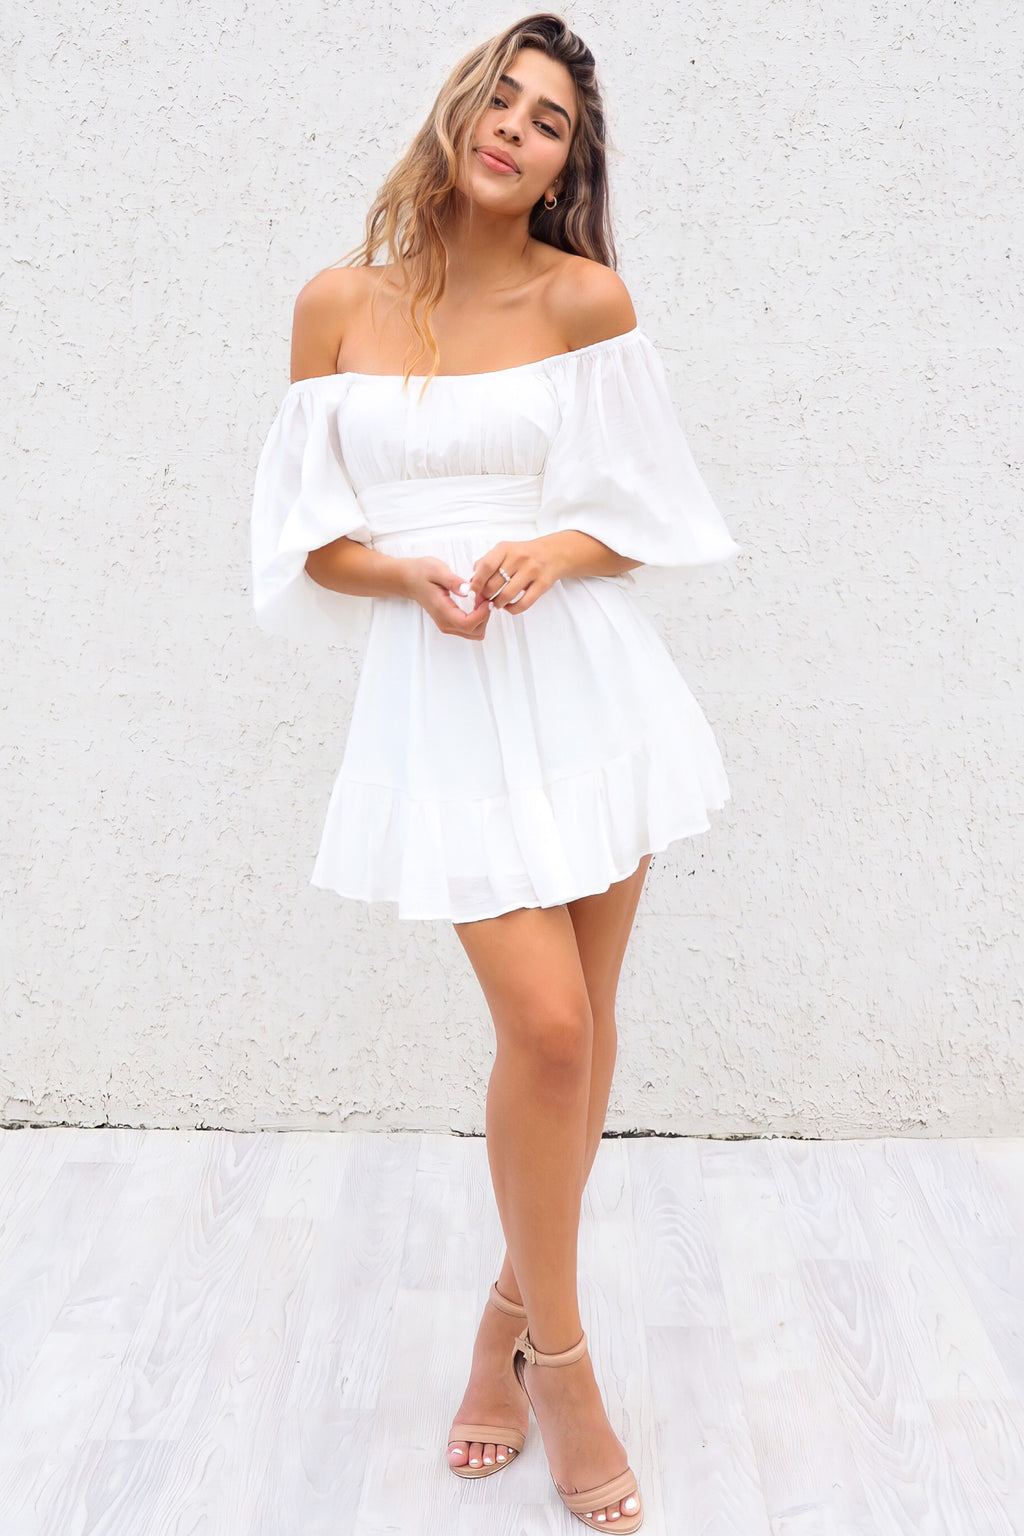 La Lune Dress - White